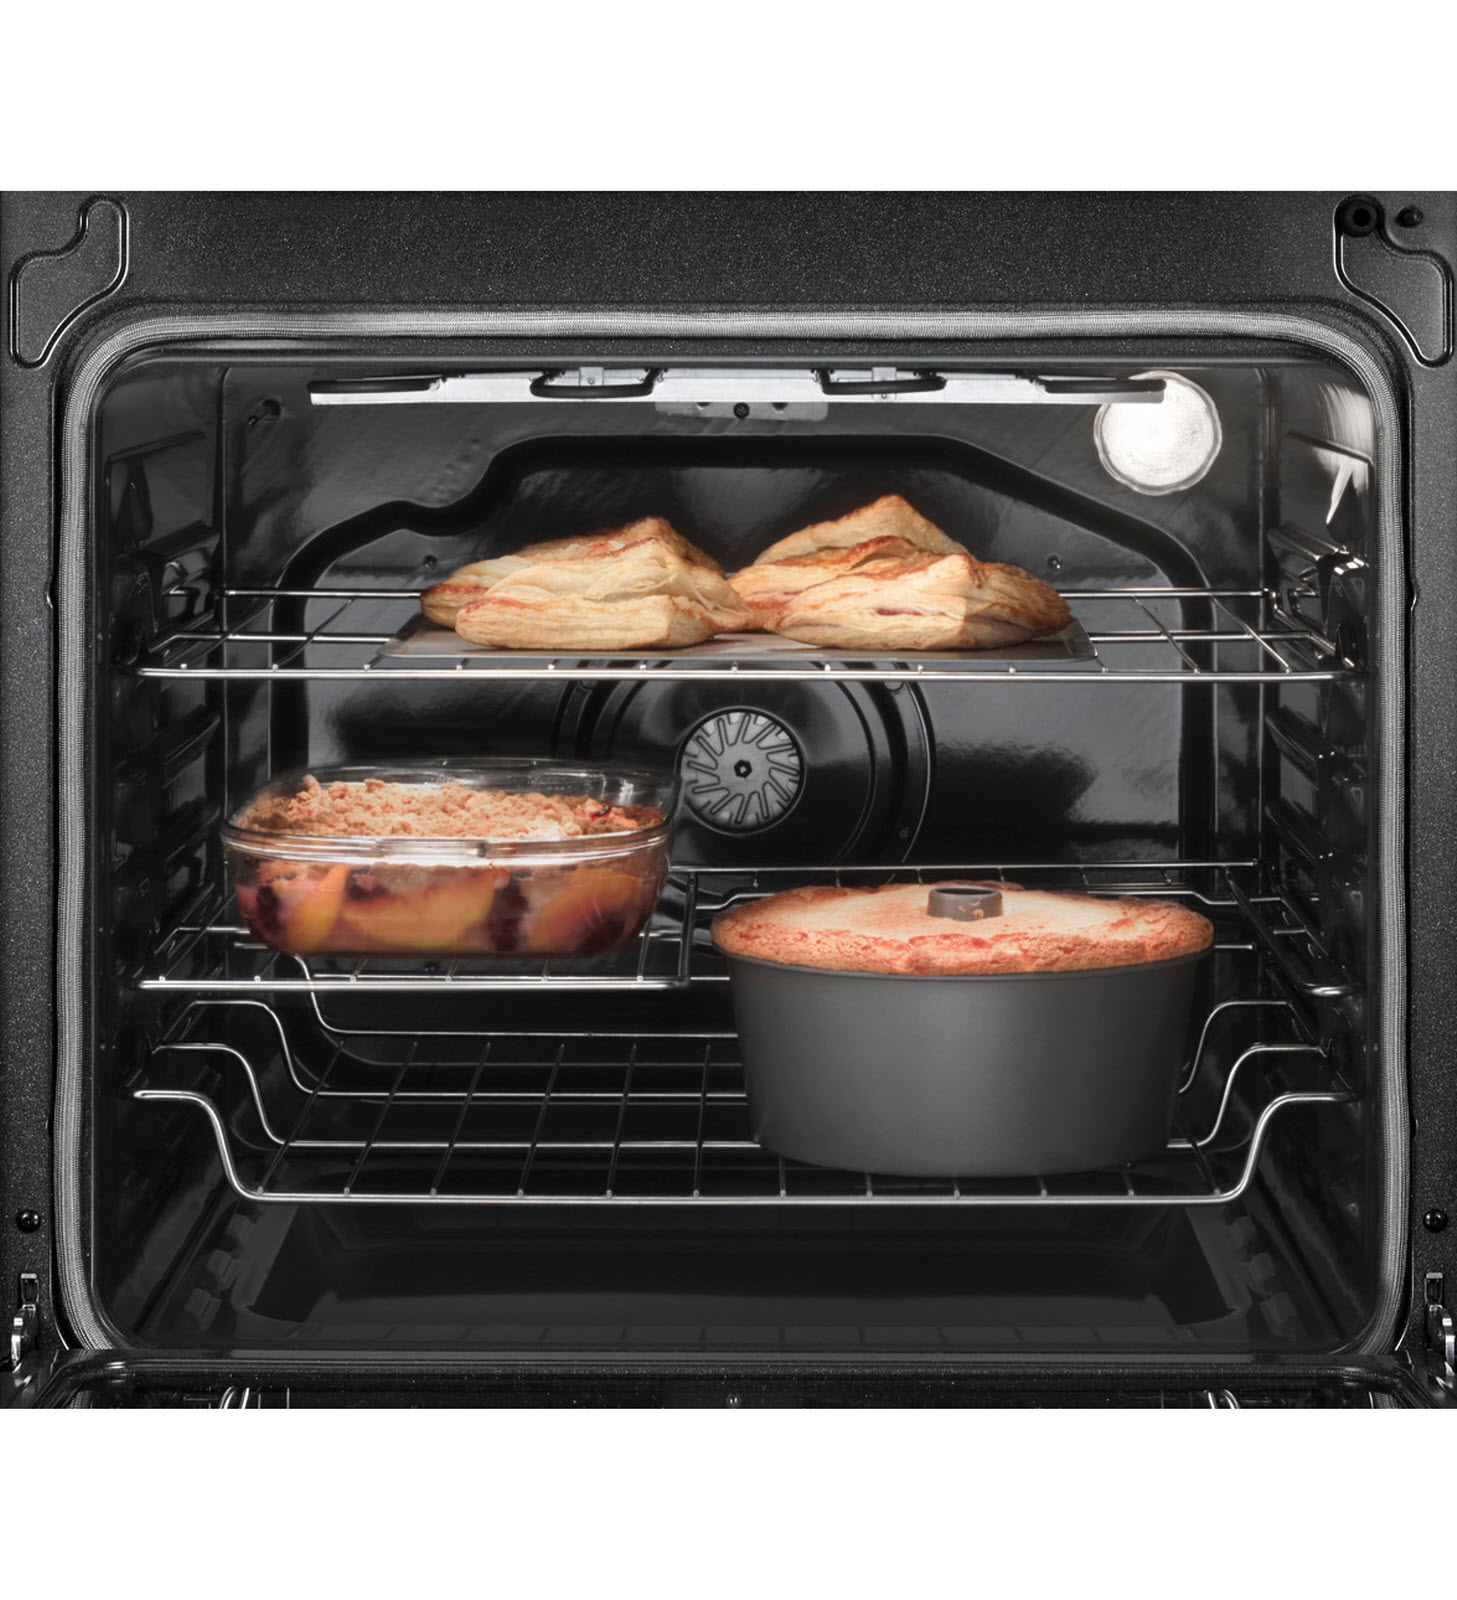 Whirlpool 6.2 cu. ft. Electric Range w/ True Convection - Black Ice